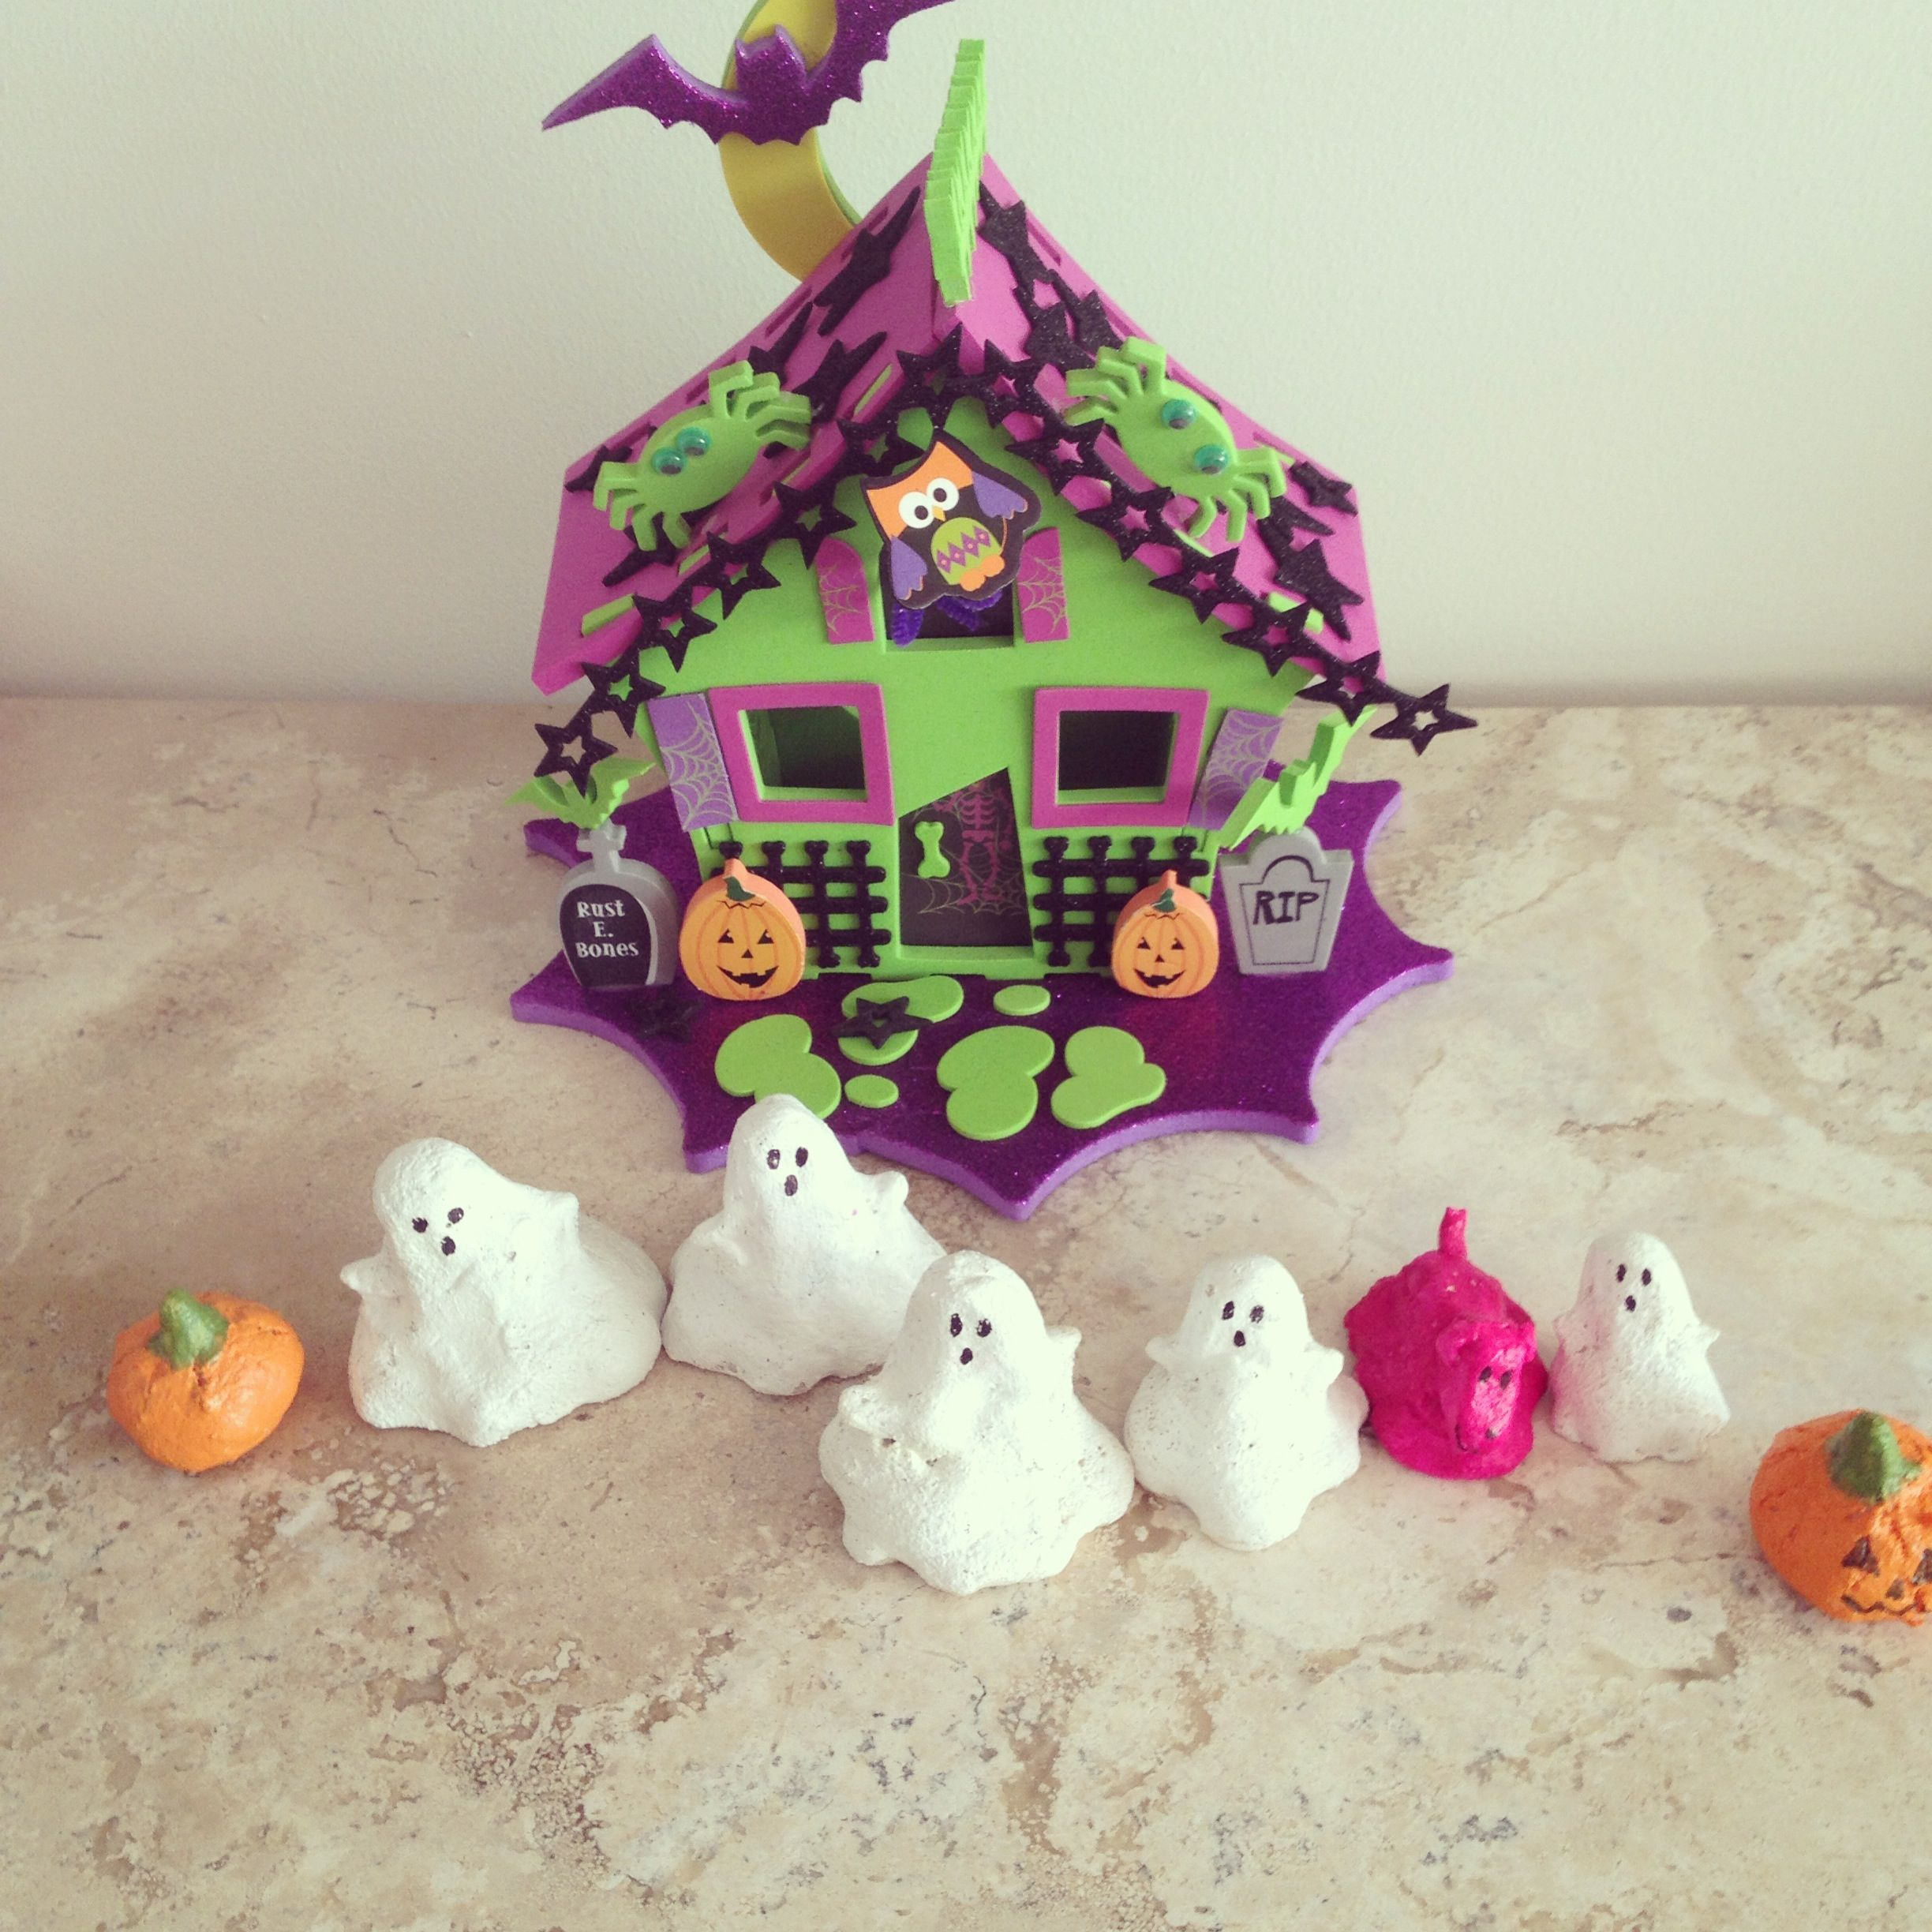 Salt dough ghosts and foami house (from Michaels) HALLOWEEN - michaels halloween decorations